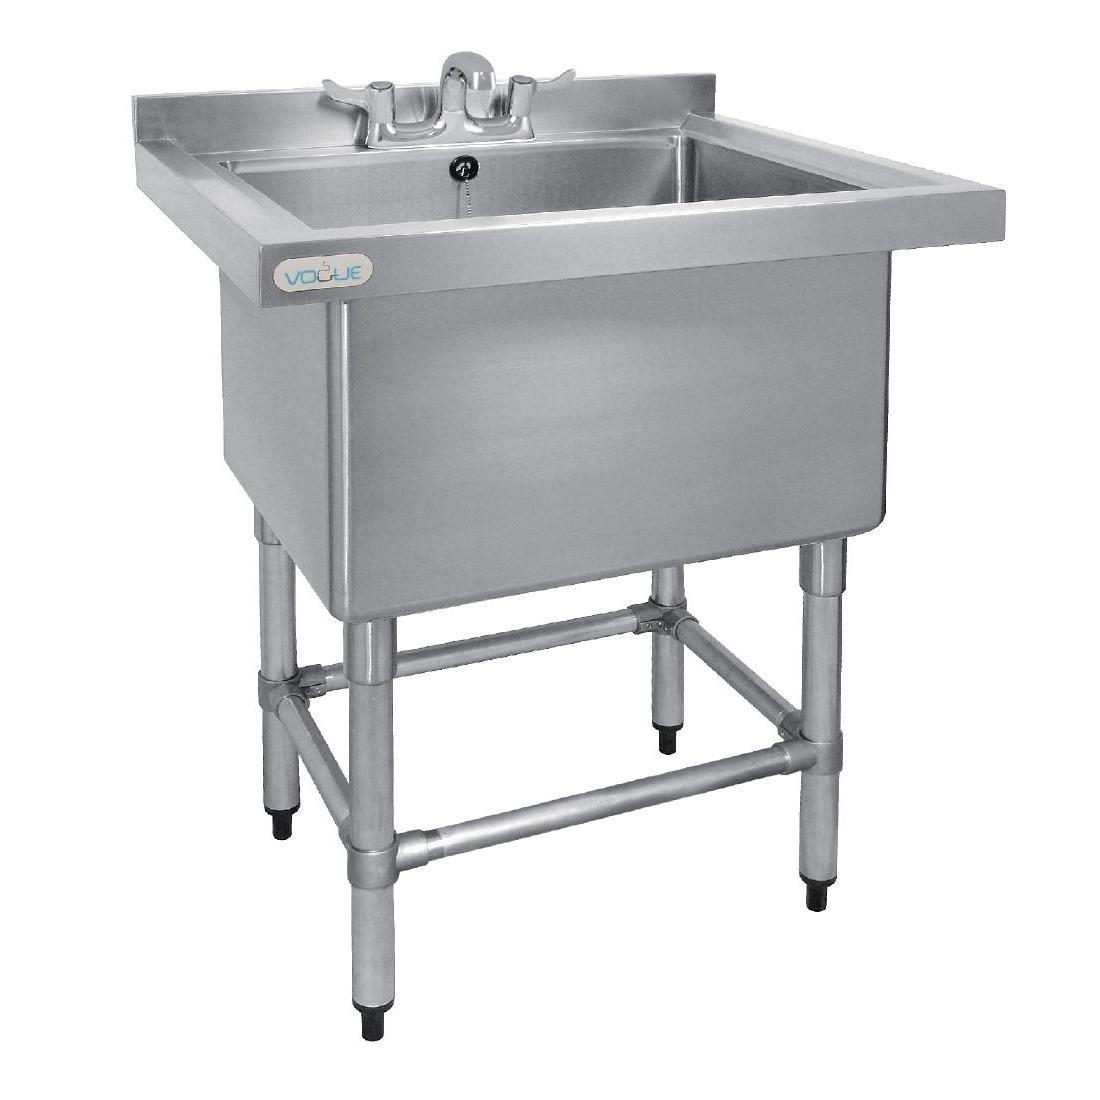 Vogue Deep Pot Sink - Each - CE141